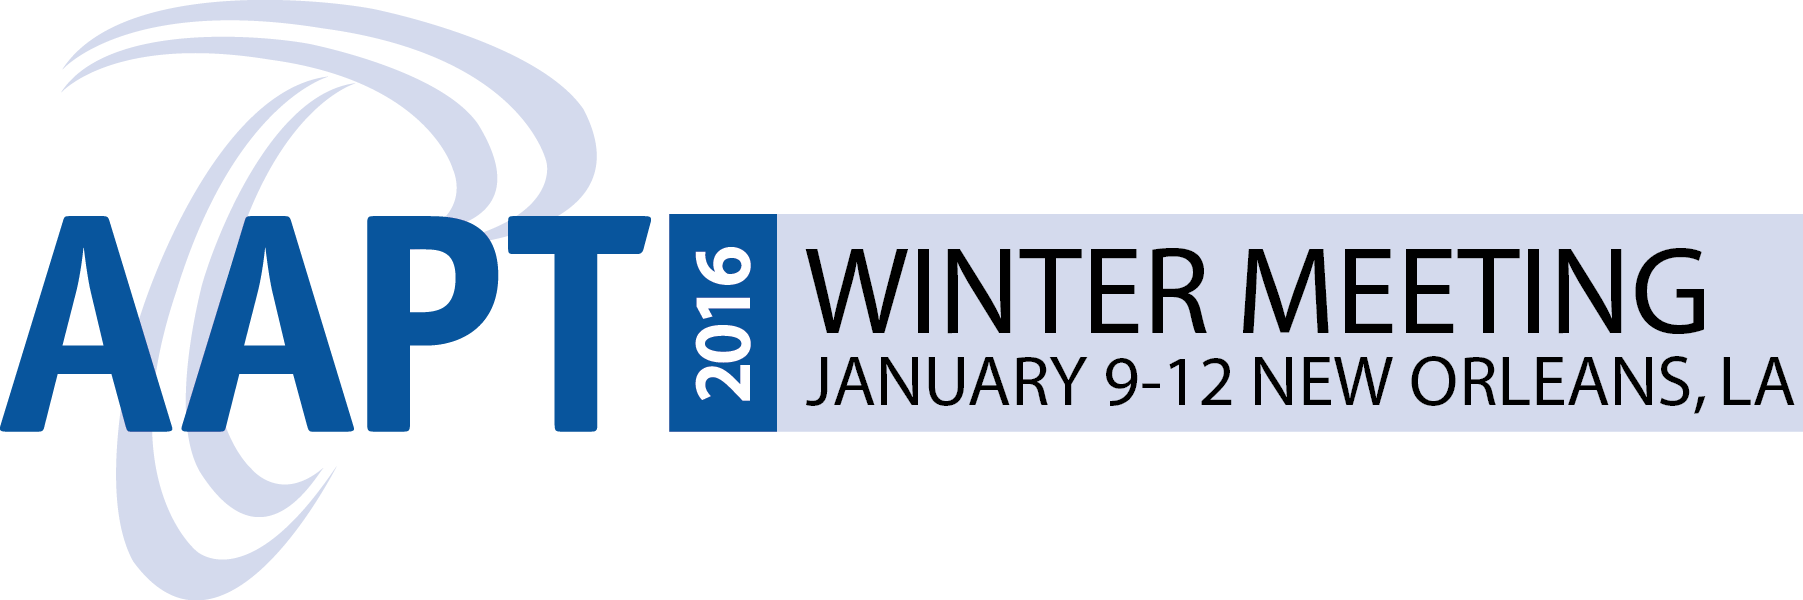 2016 Winter Meeting logo